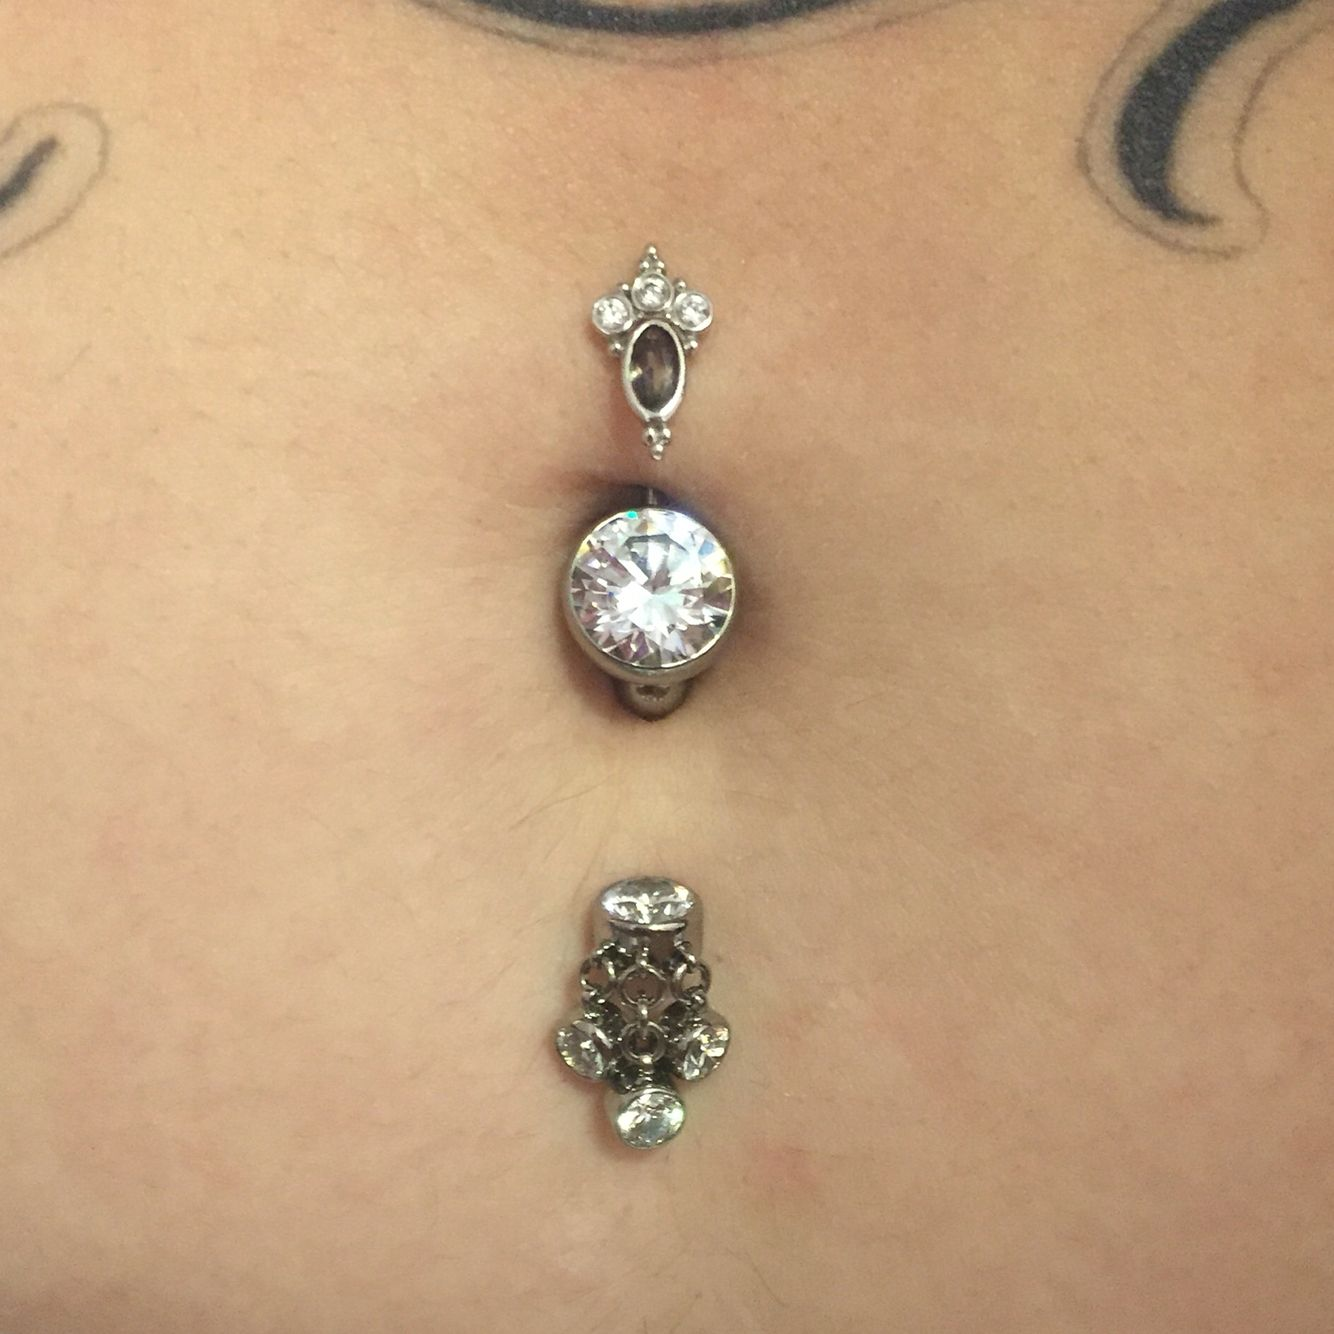 Check Out This Awesome Double Navel Piercing With Some Of Our